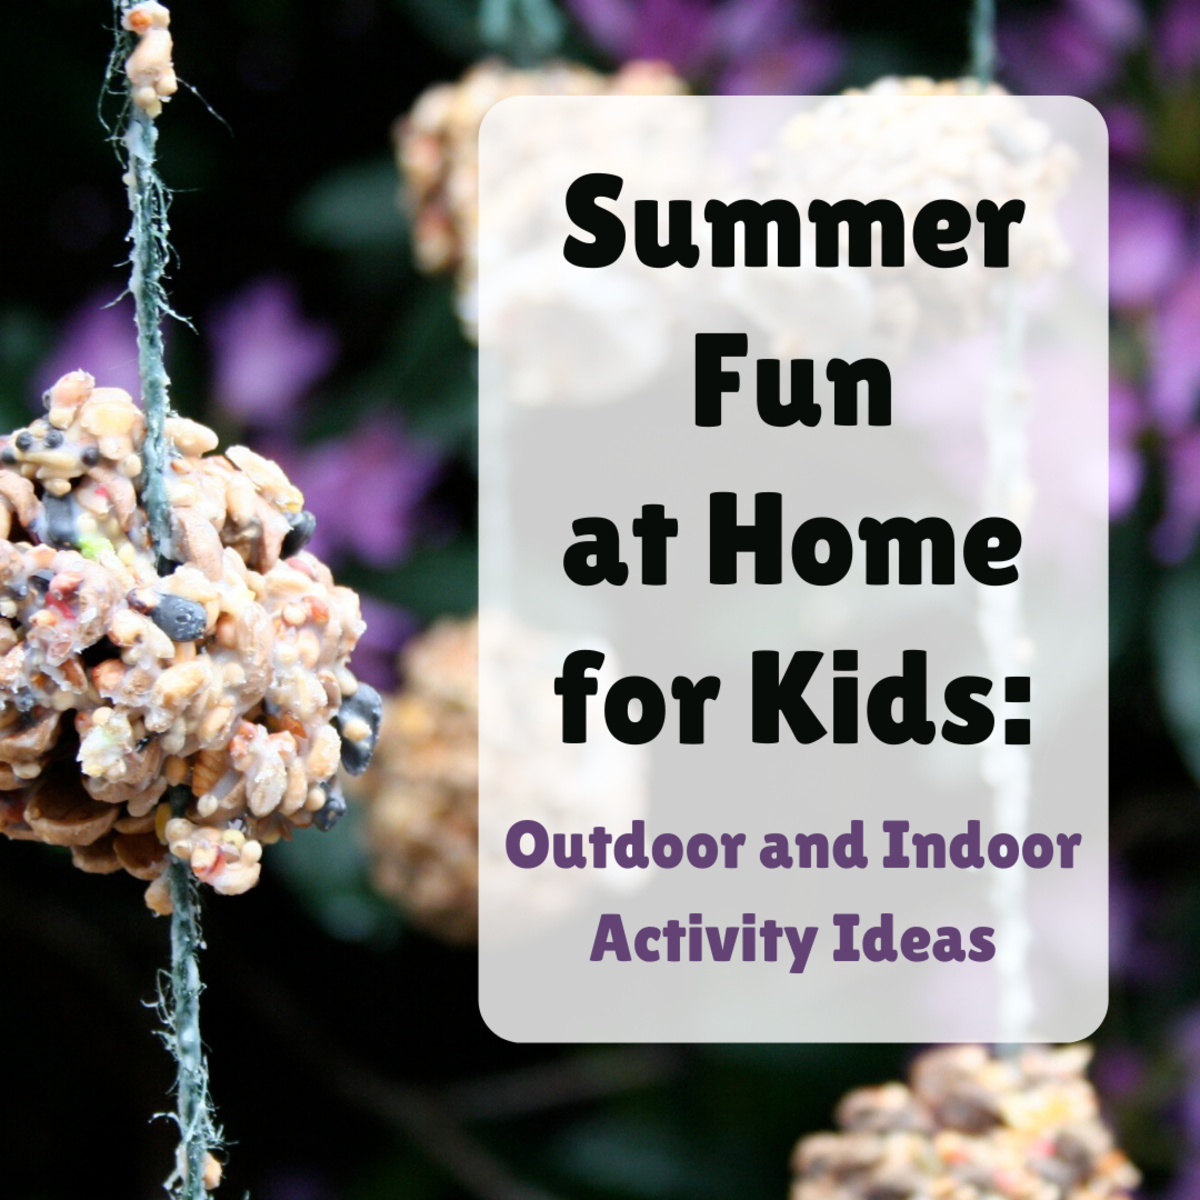 From gardening to games to crafts (like these pine cone bird feeders), get ideas for some warm-weather fun around the house.